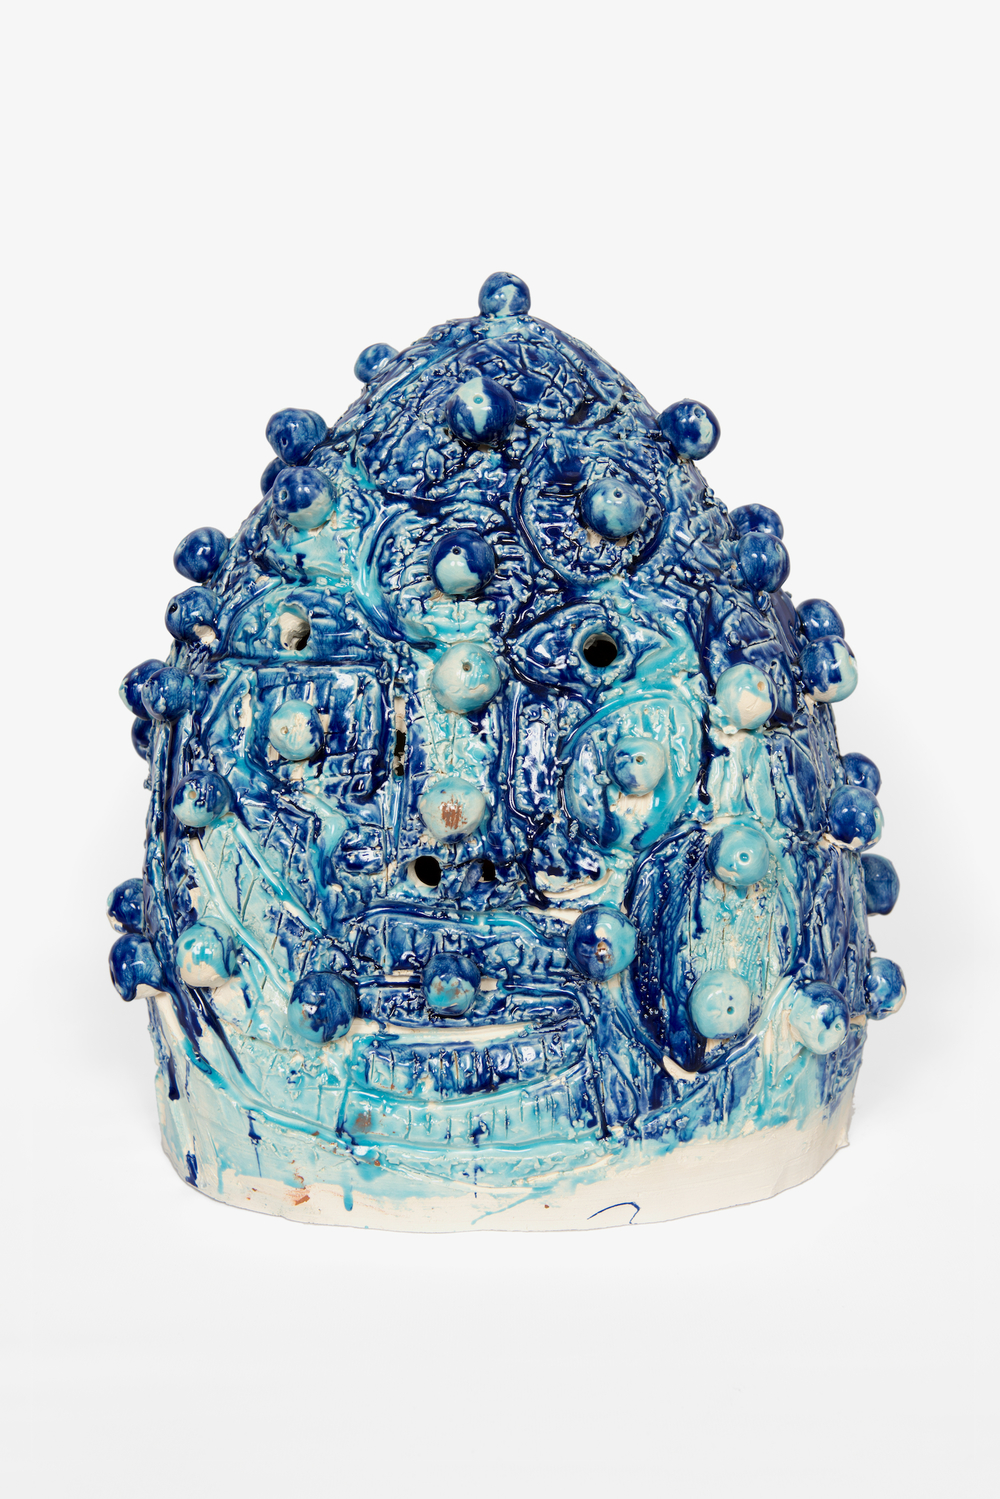 William J. O'Brien  Blues  2012 Glazed ceramic 18h x 16 ½w x 12d in WOB805